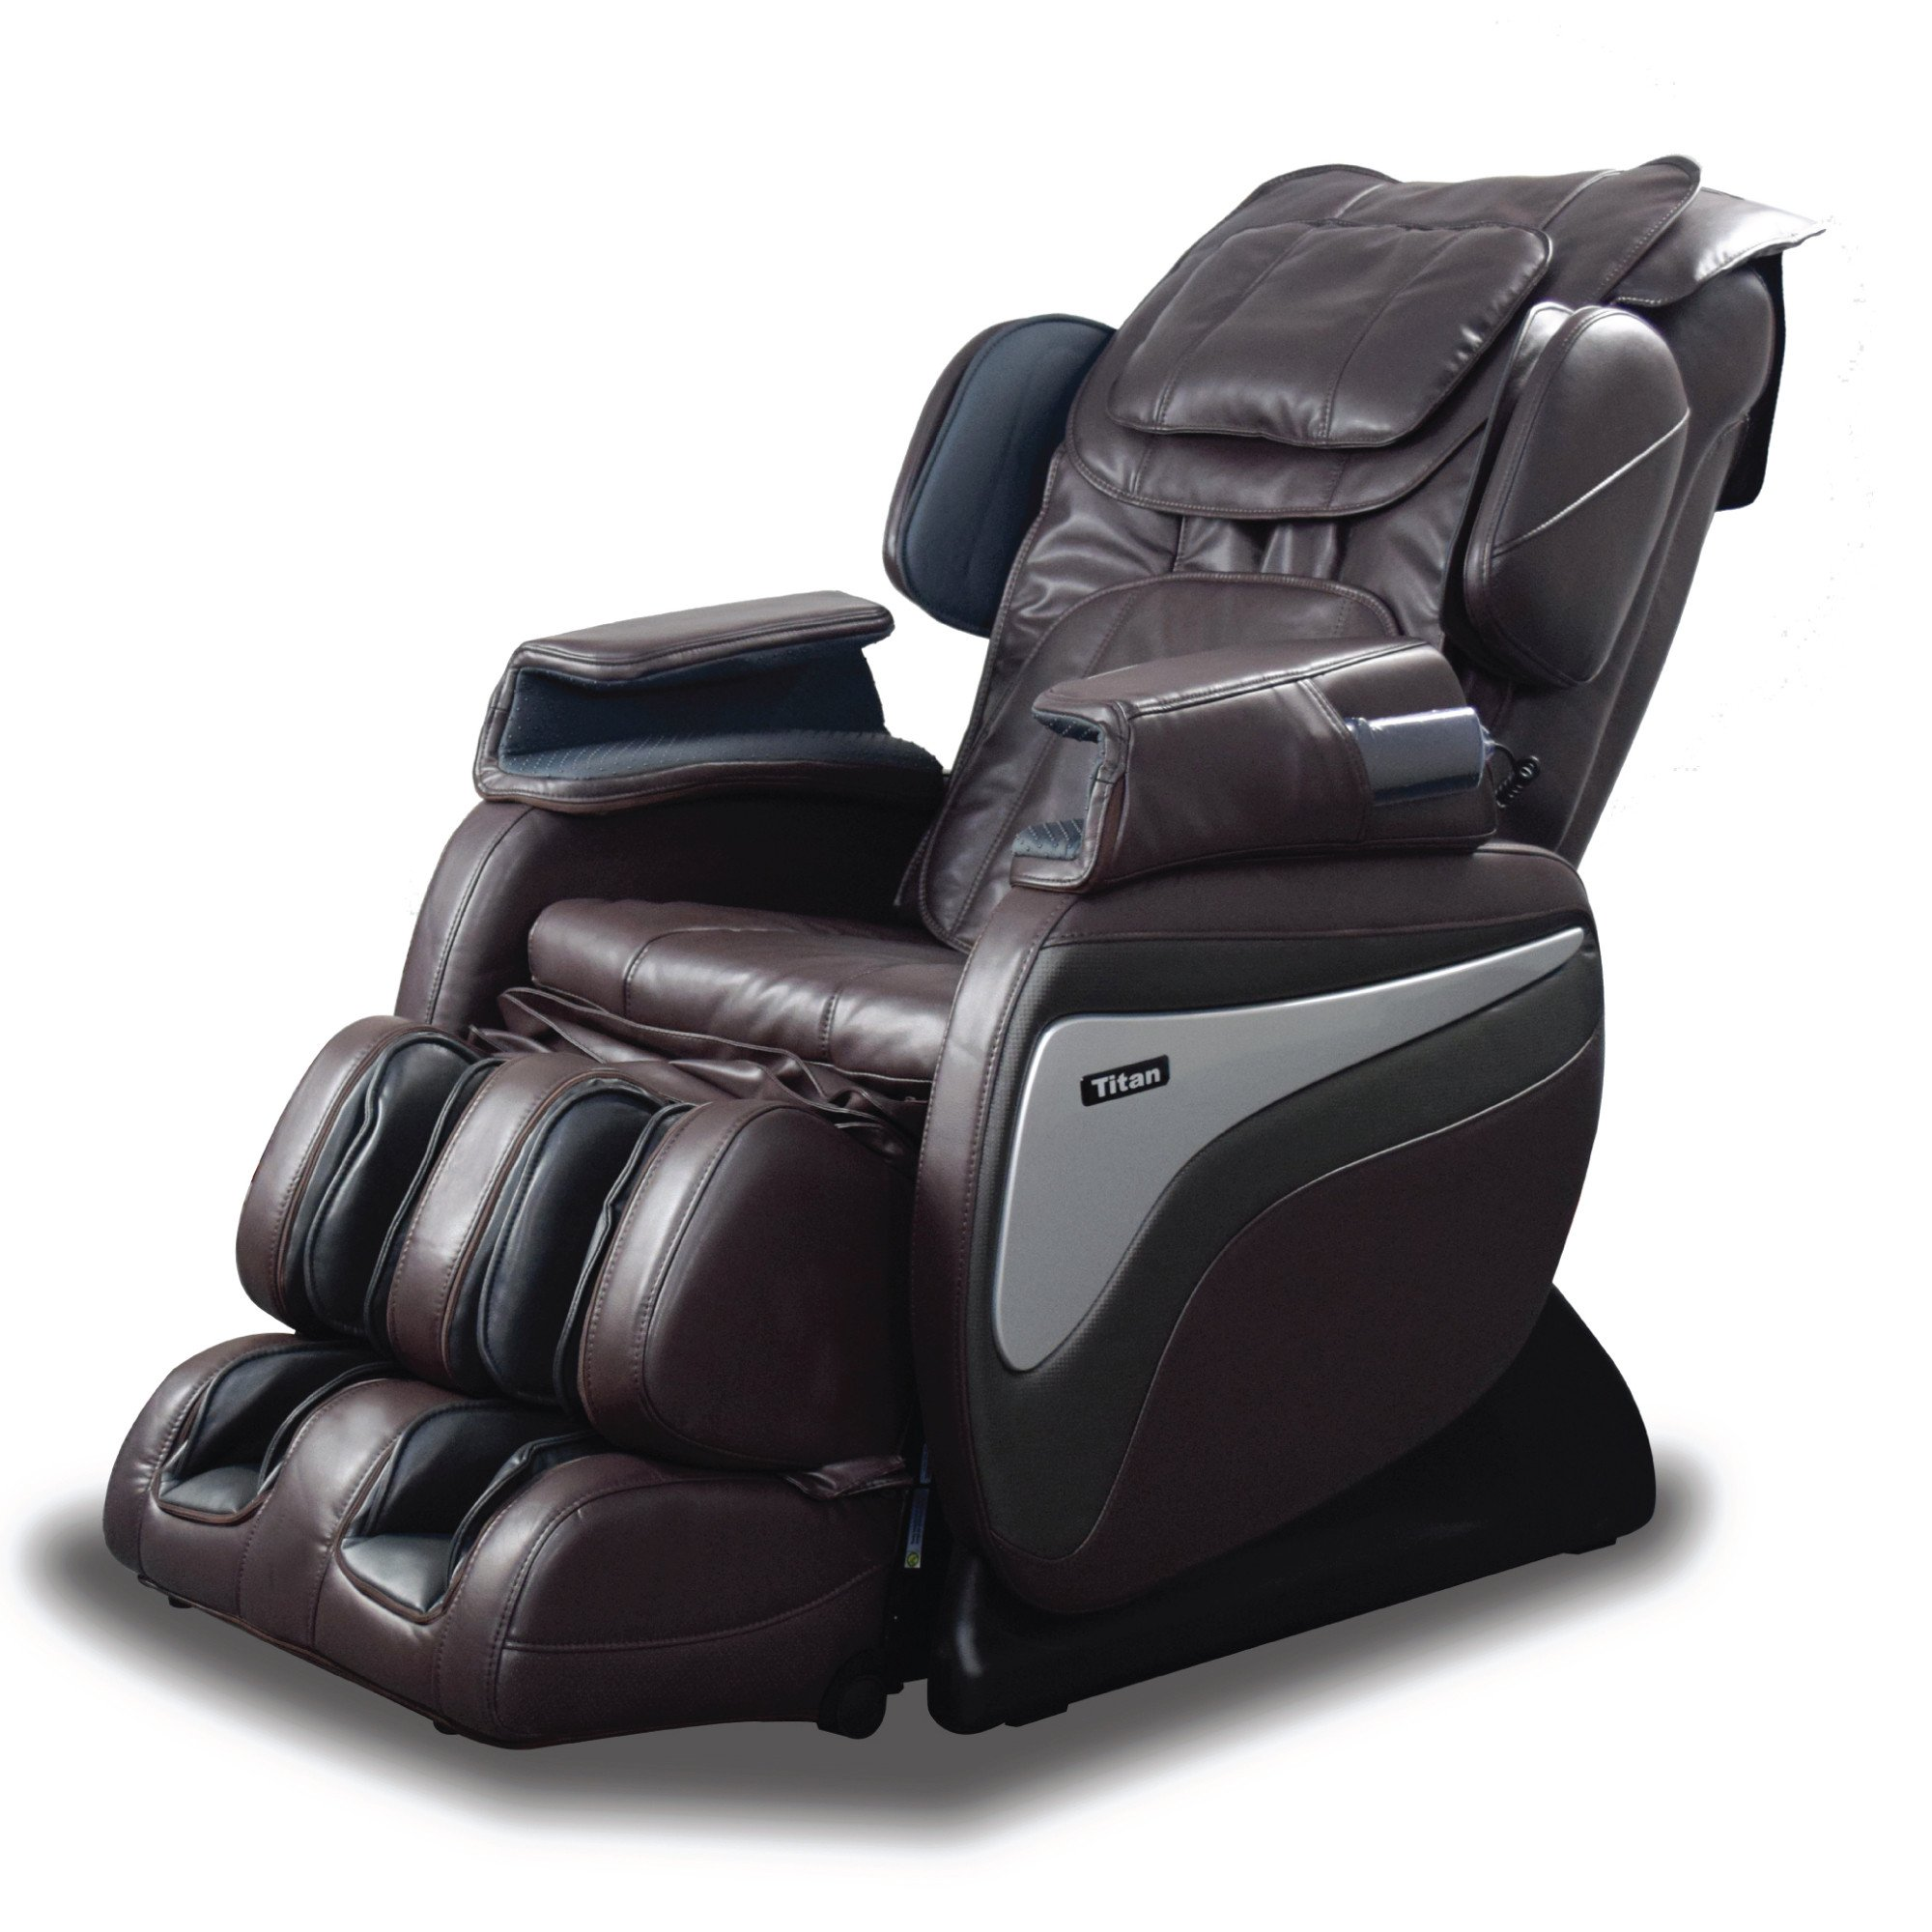 Titan TI-8700 Massage Chair - Brown - Front Angle View